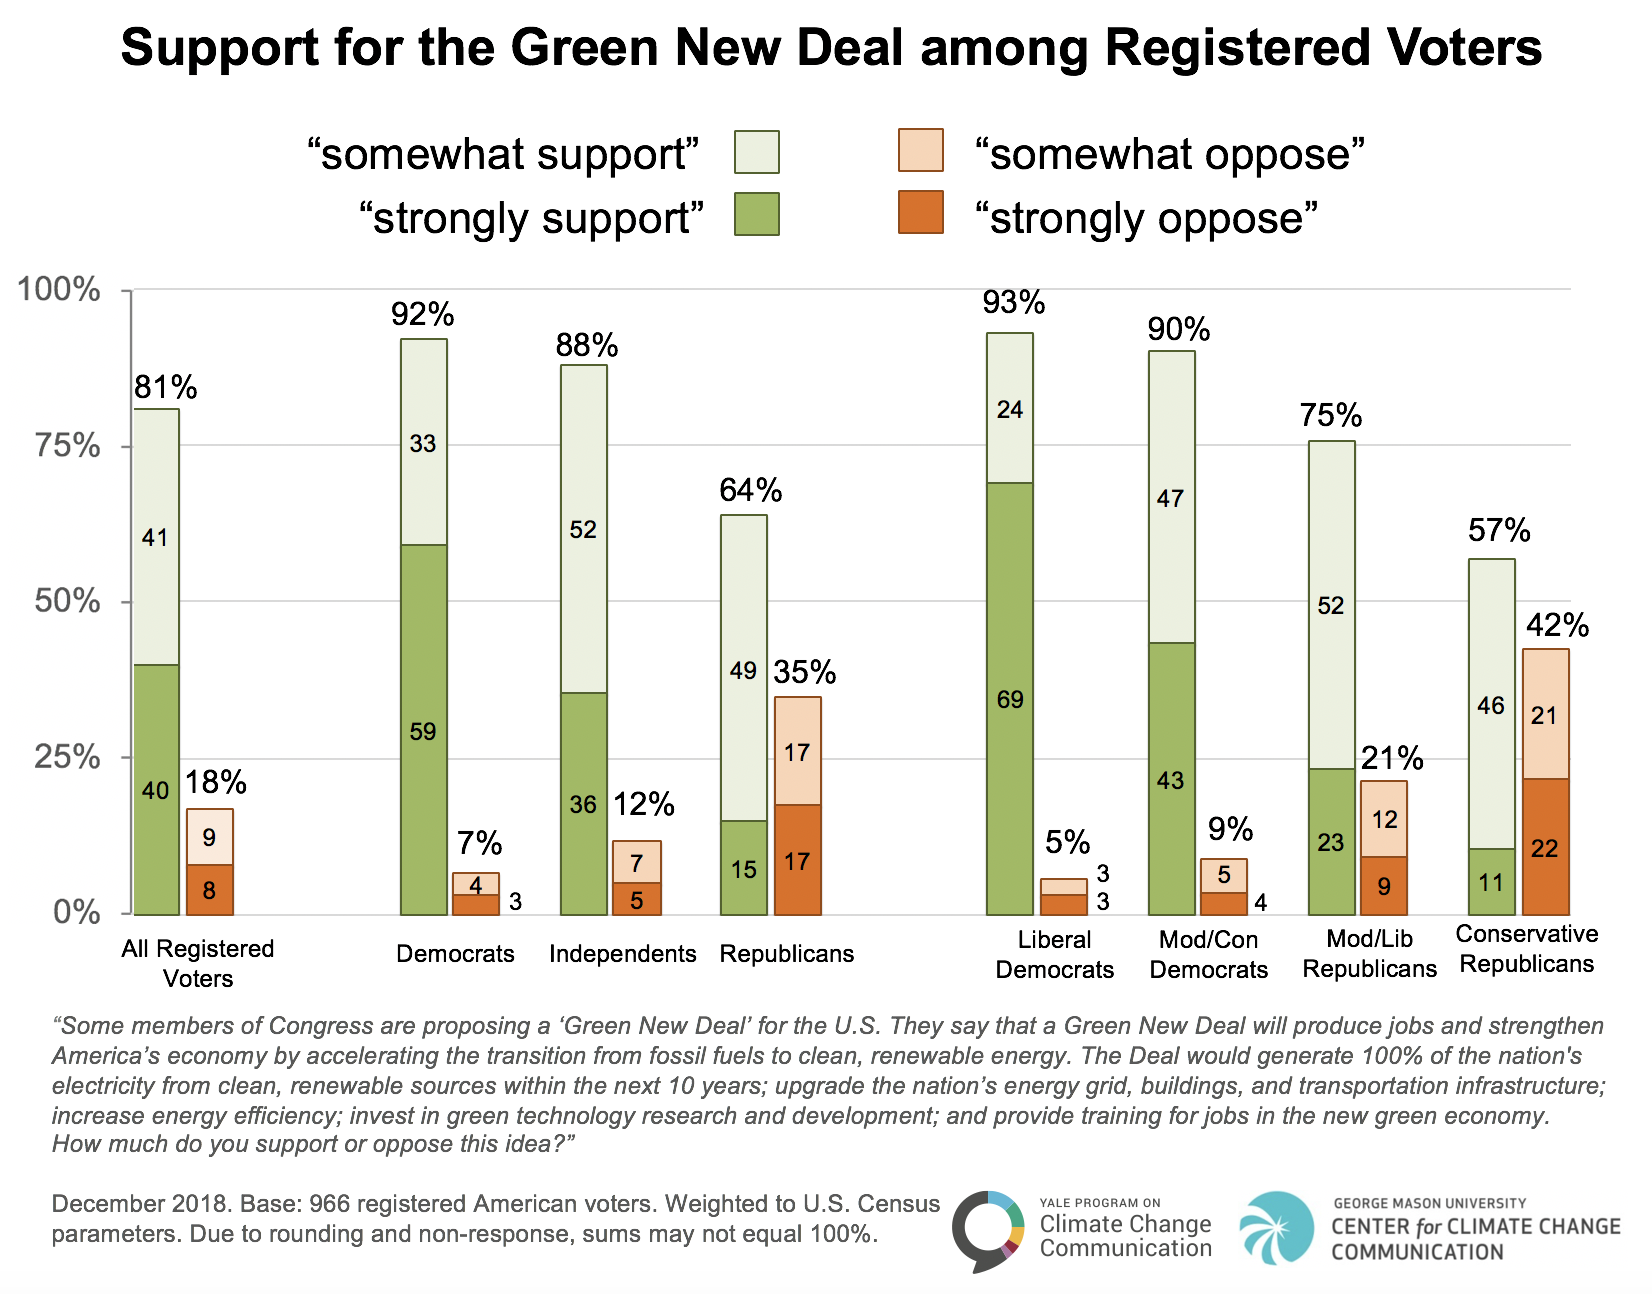 New Government Report Suggests 1 In 40 >> The Green New Deal Has Strong Bipartisan Support Yale Program On